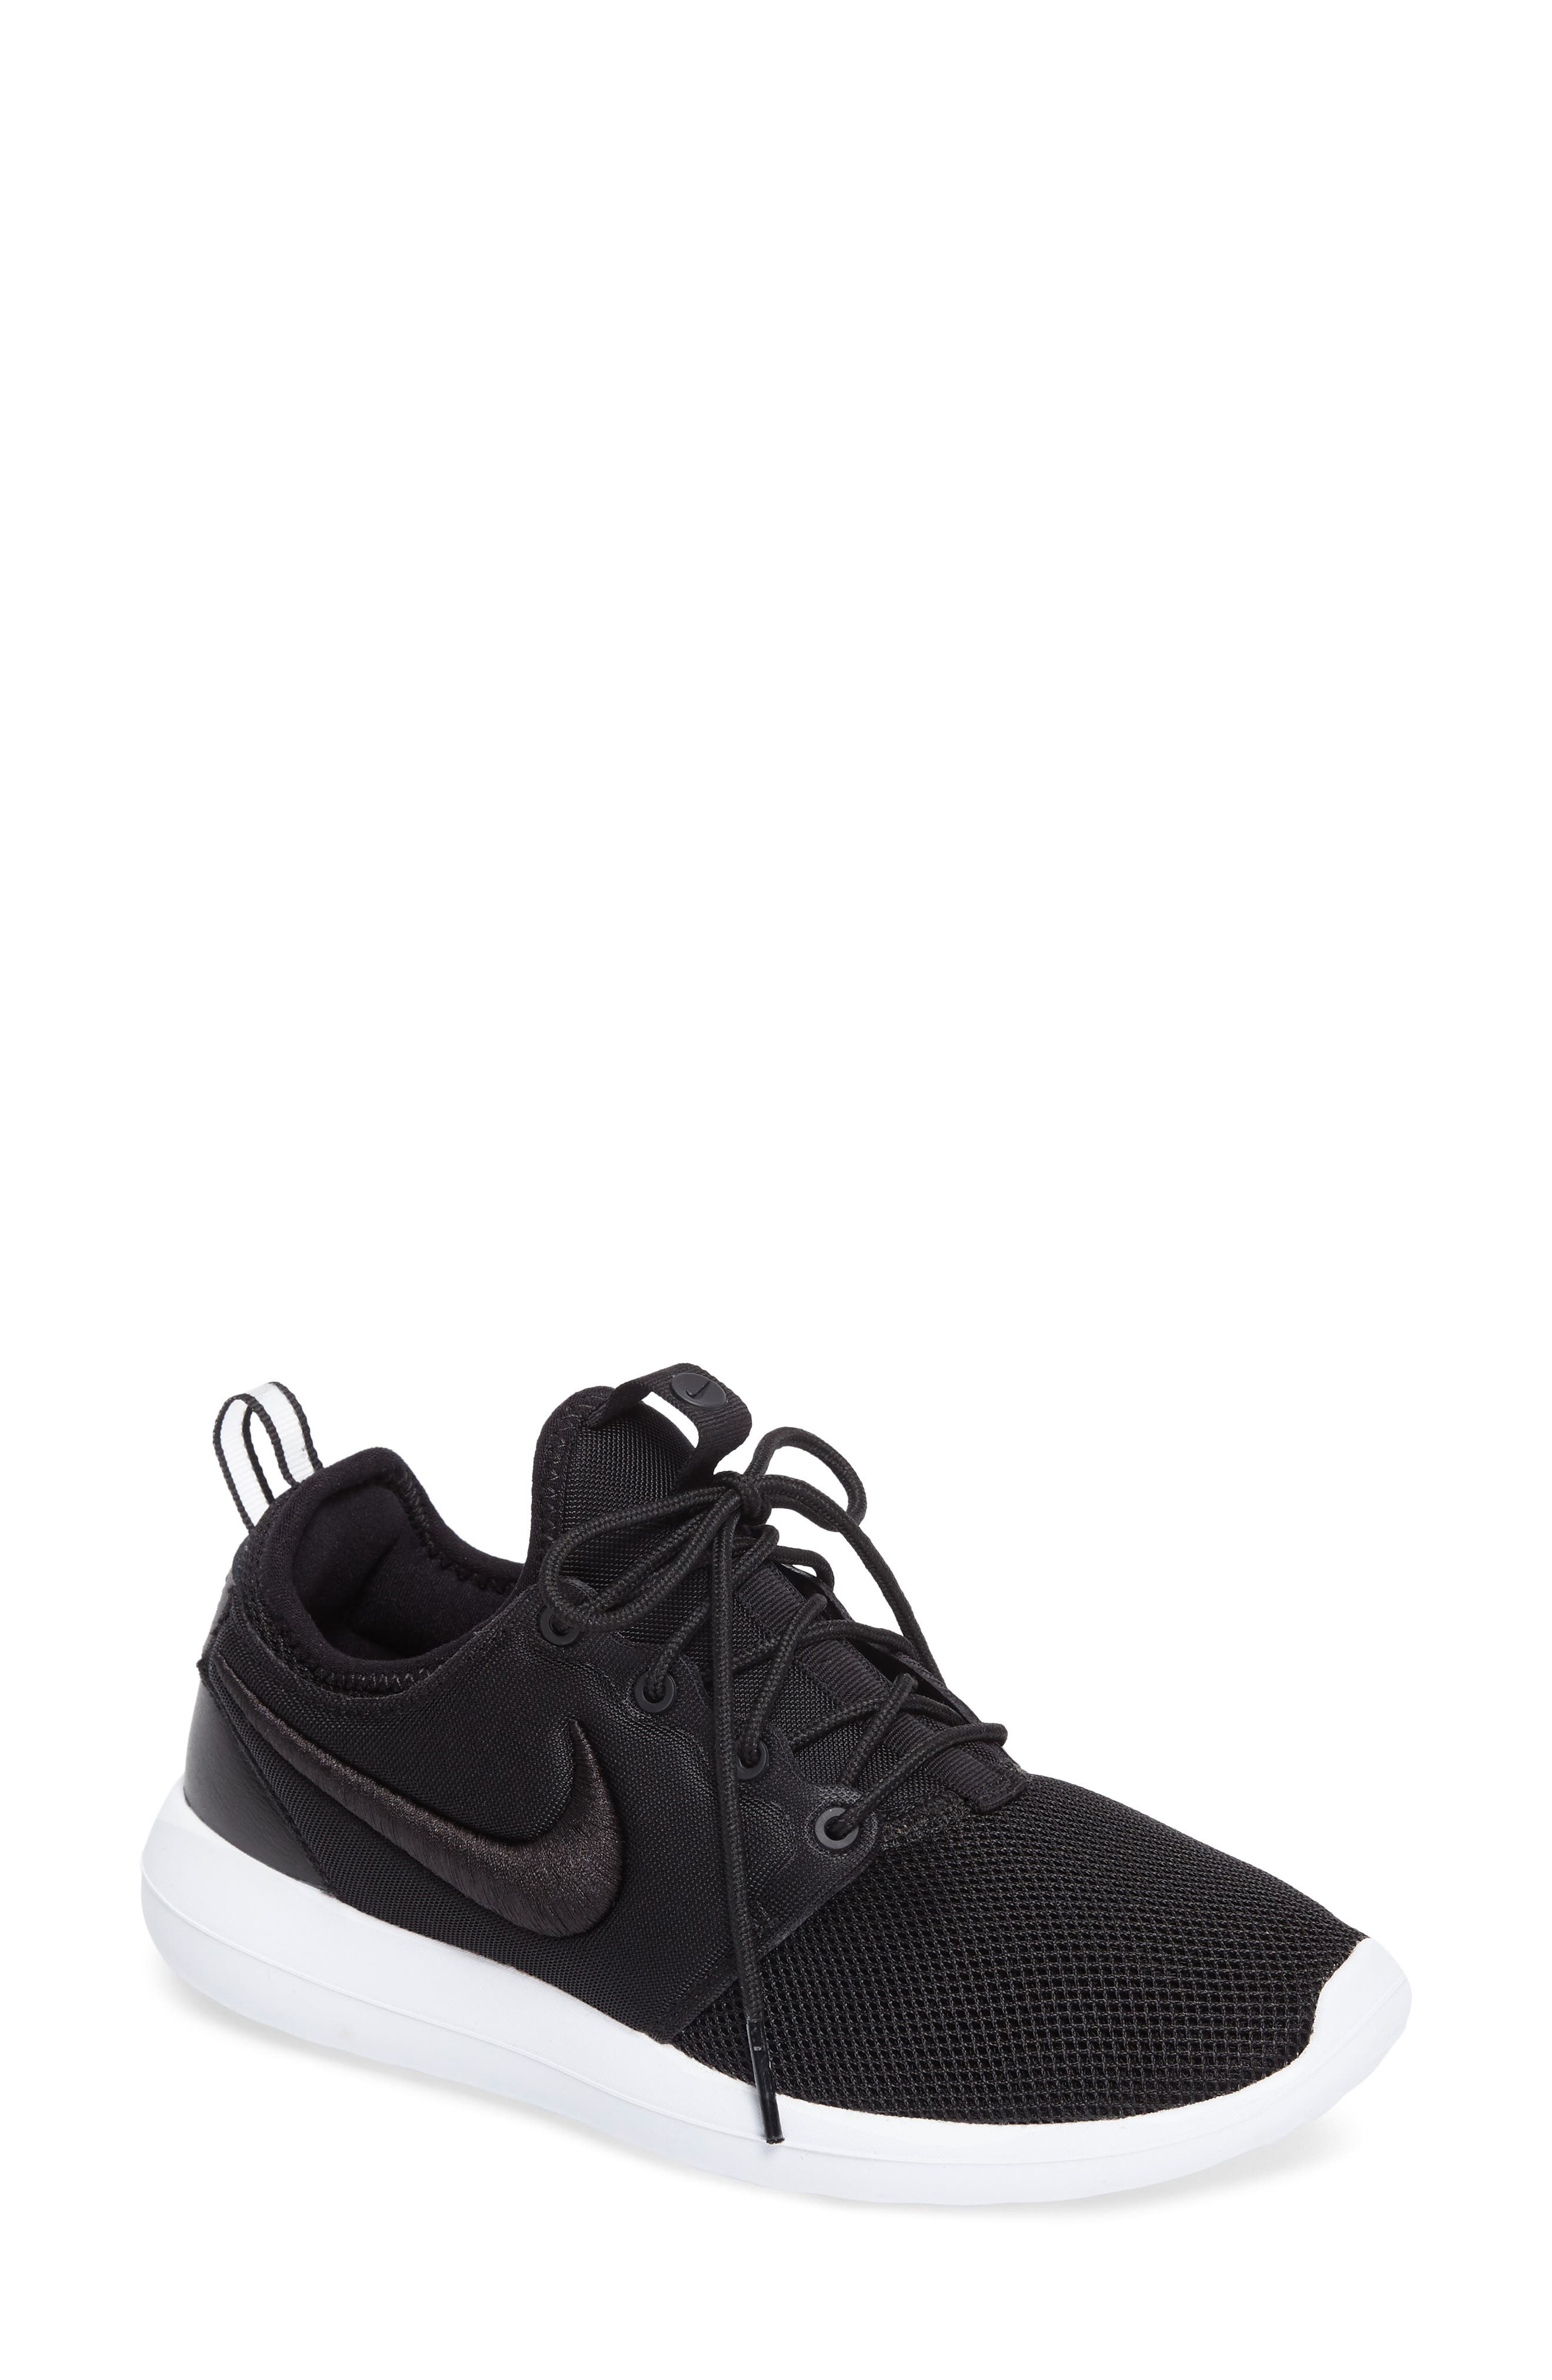 Roshe Two Breathe Sneaker,                             Main thumbnail 1, color,                             001